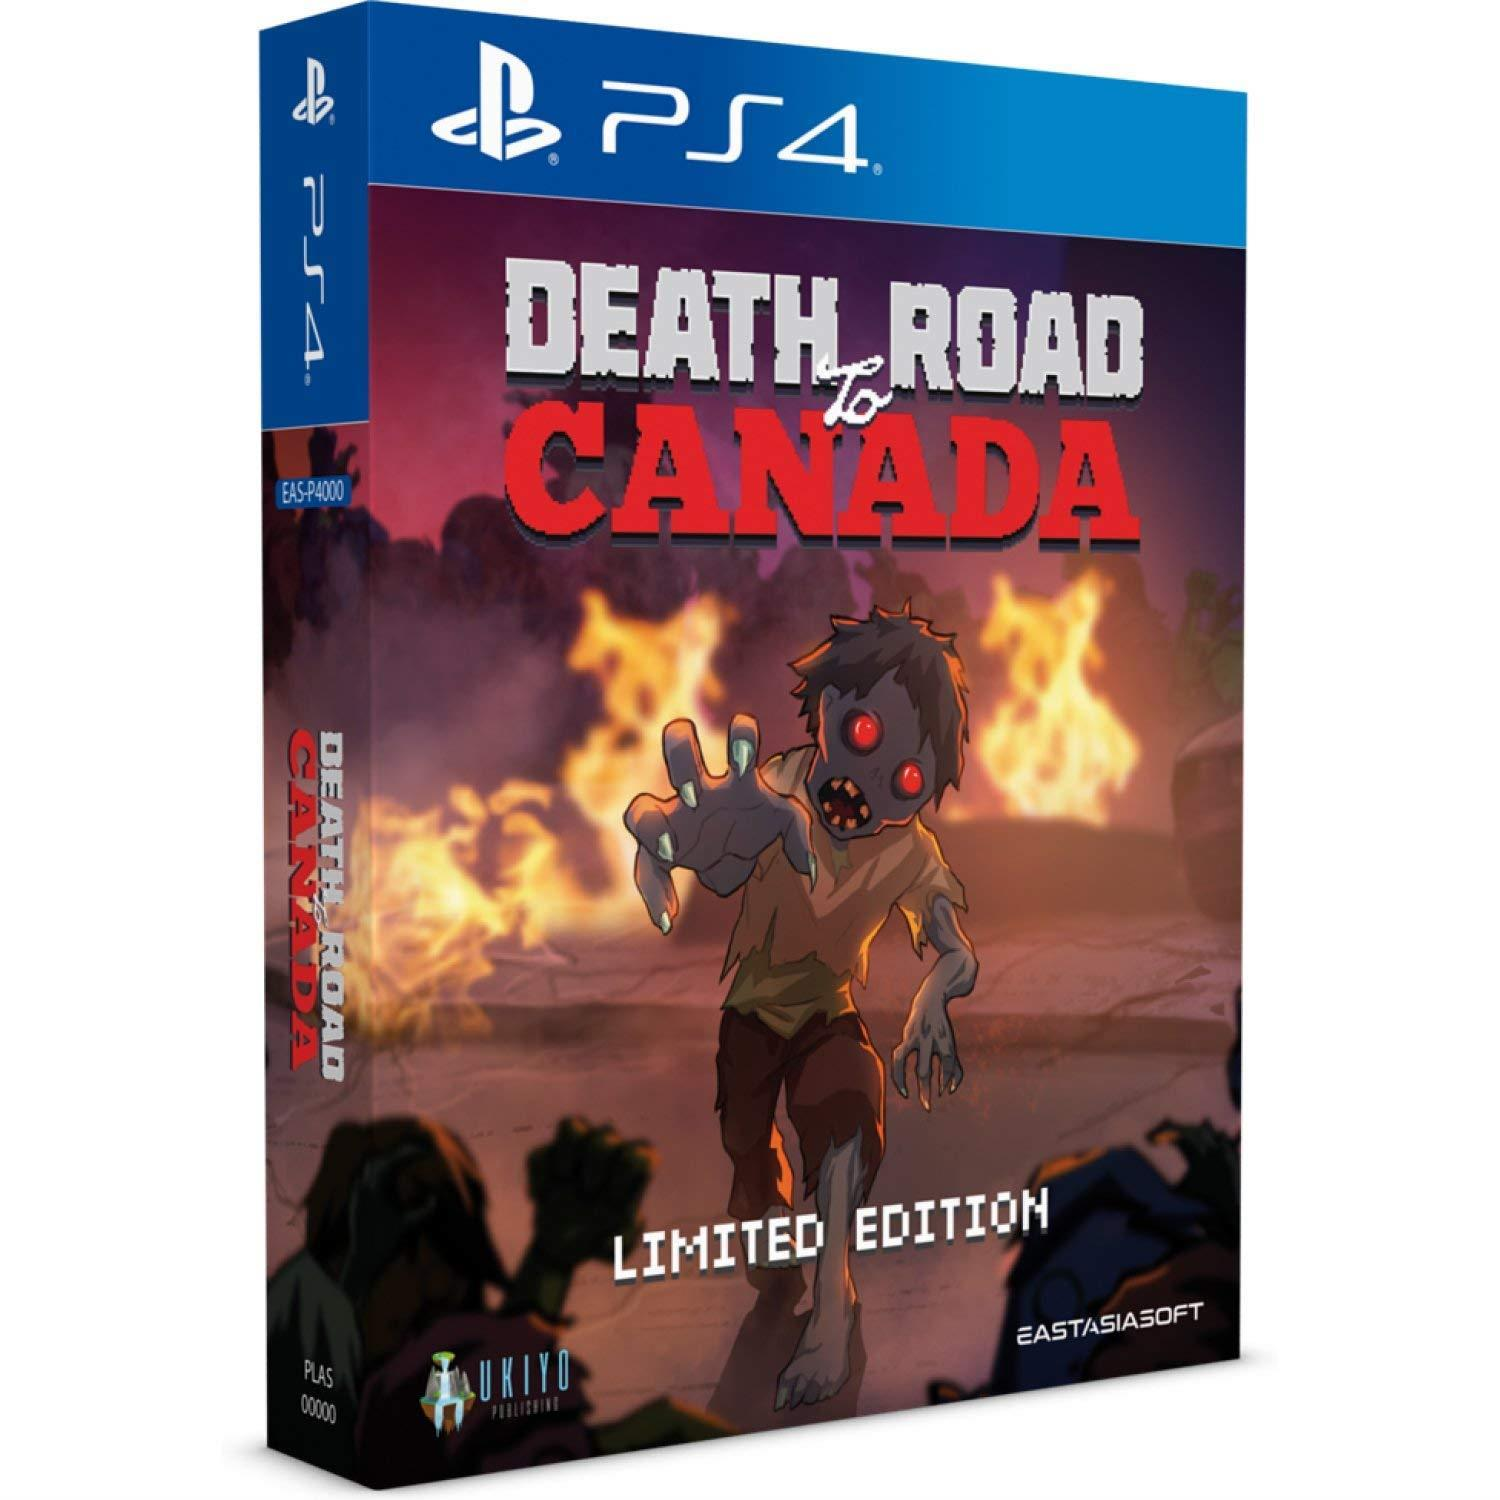 Death Road to Canada - an exciting zombie game